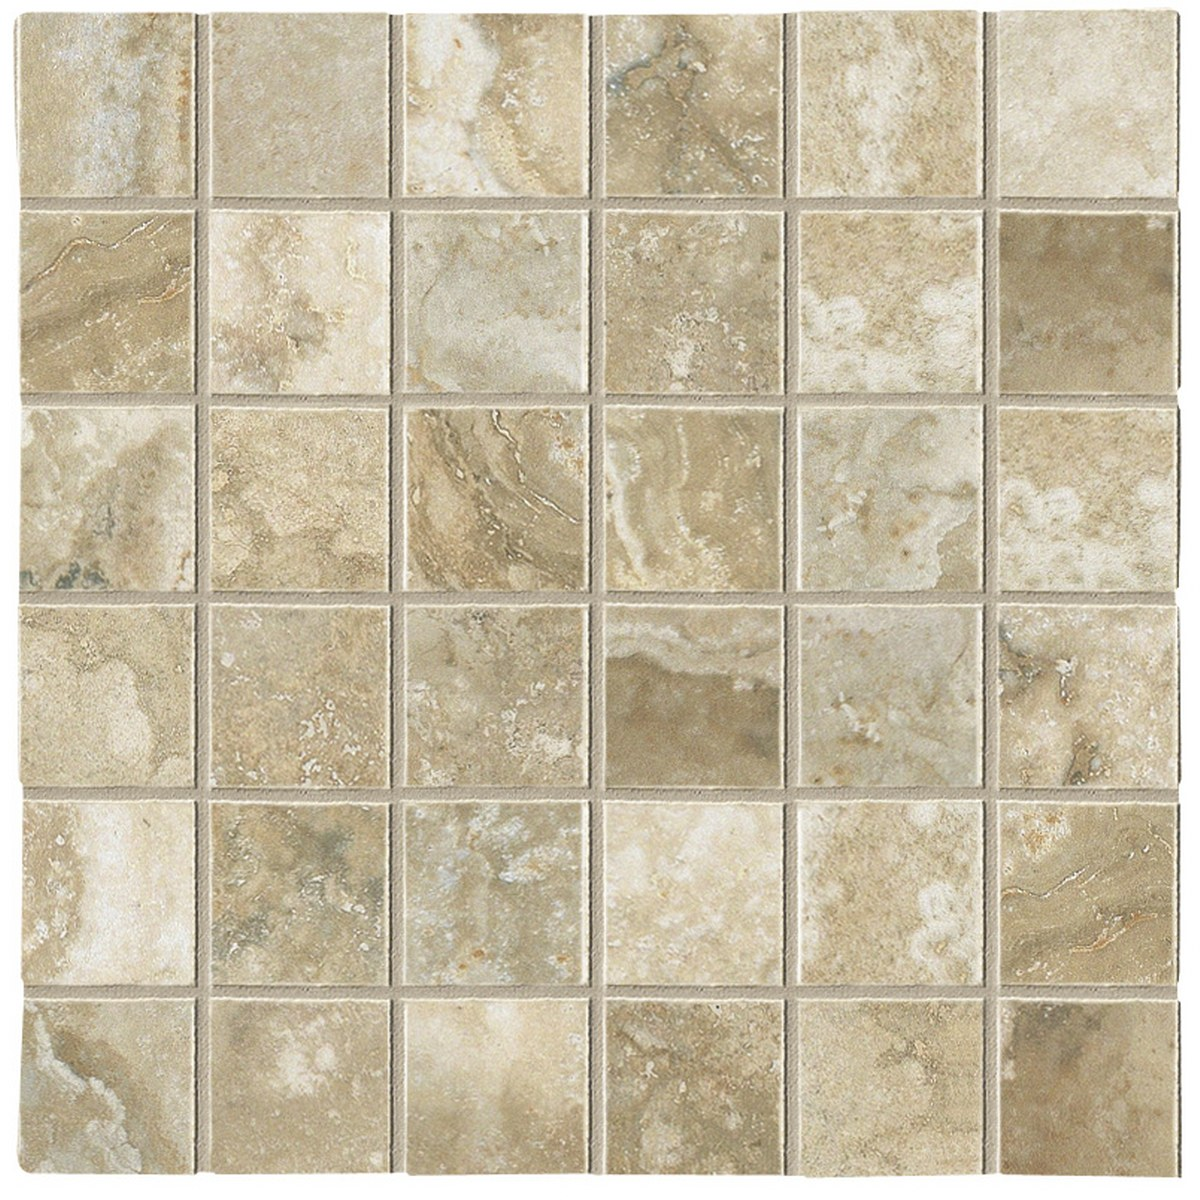 Alabastro beige mosaic ceramic tile supplies for Carrelage salle de bain mosaique beige